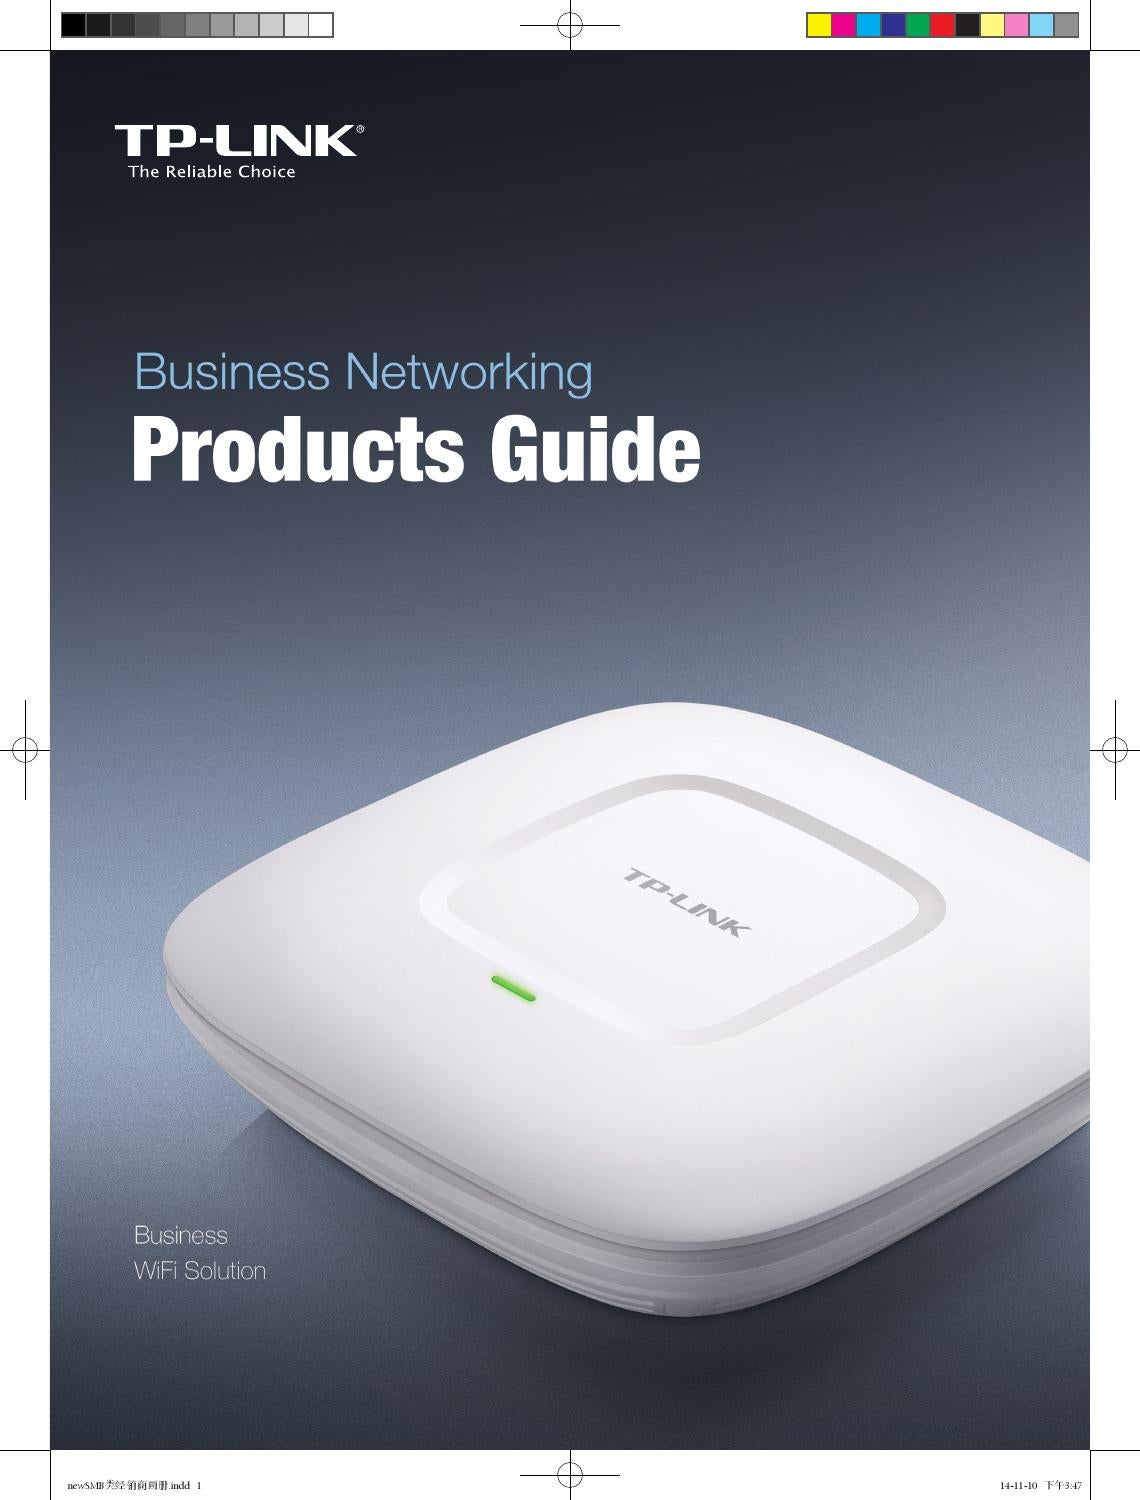 Tp-Link Networking Products in